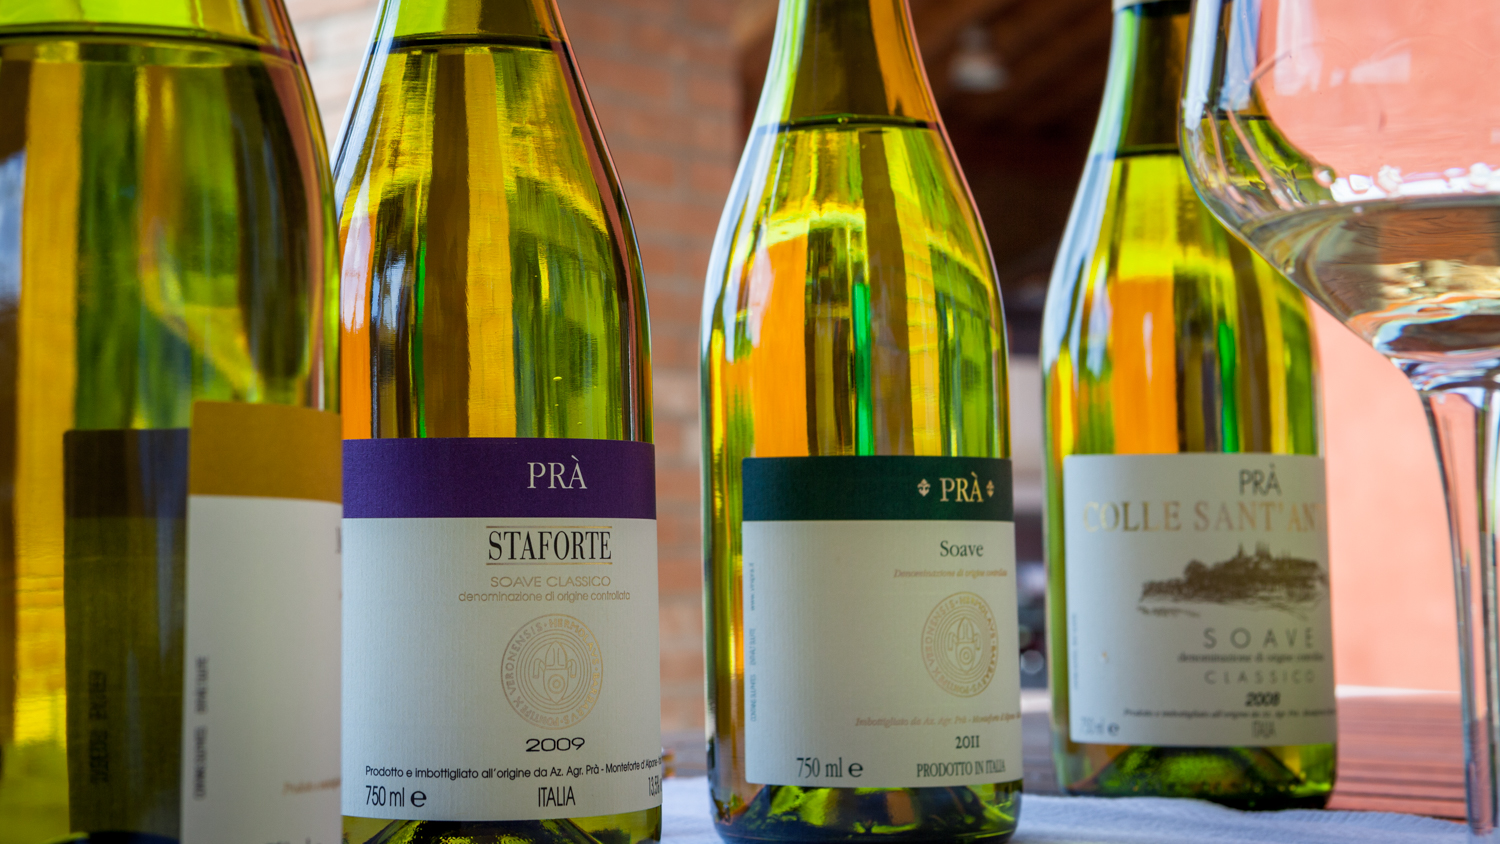 Italy : Veneto : Tasting the full lineup of Soaves at Azienda Agricola Pra, one of the zone's top producers